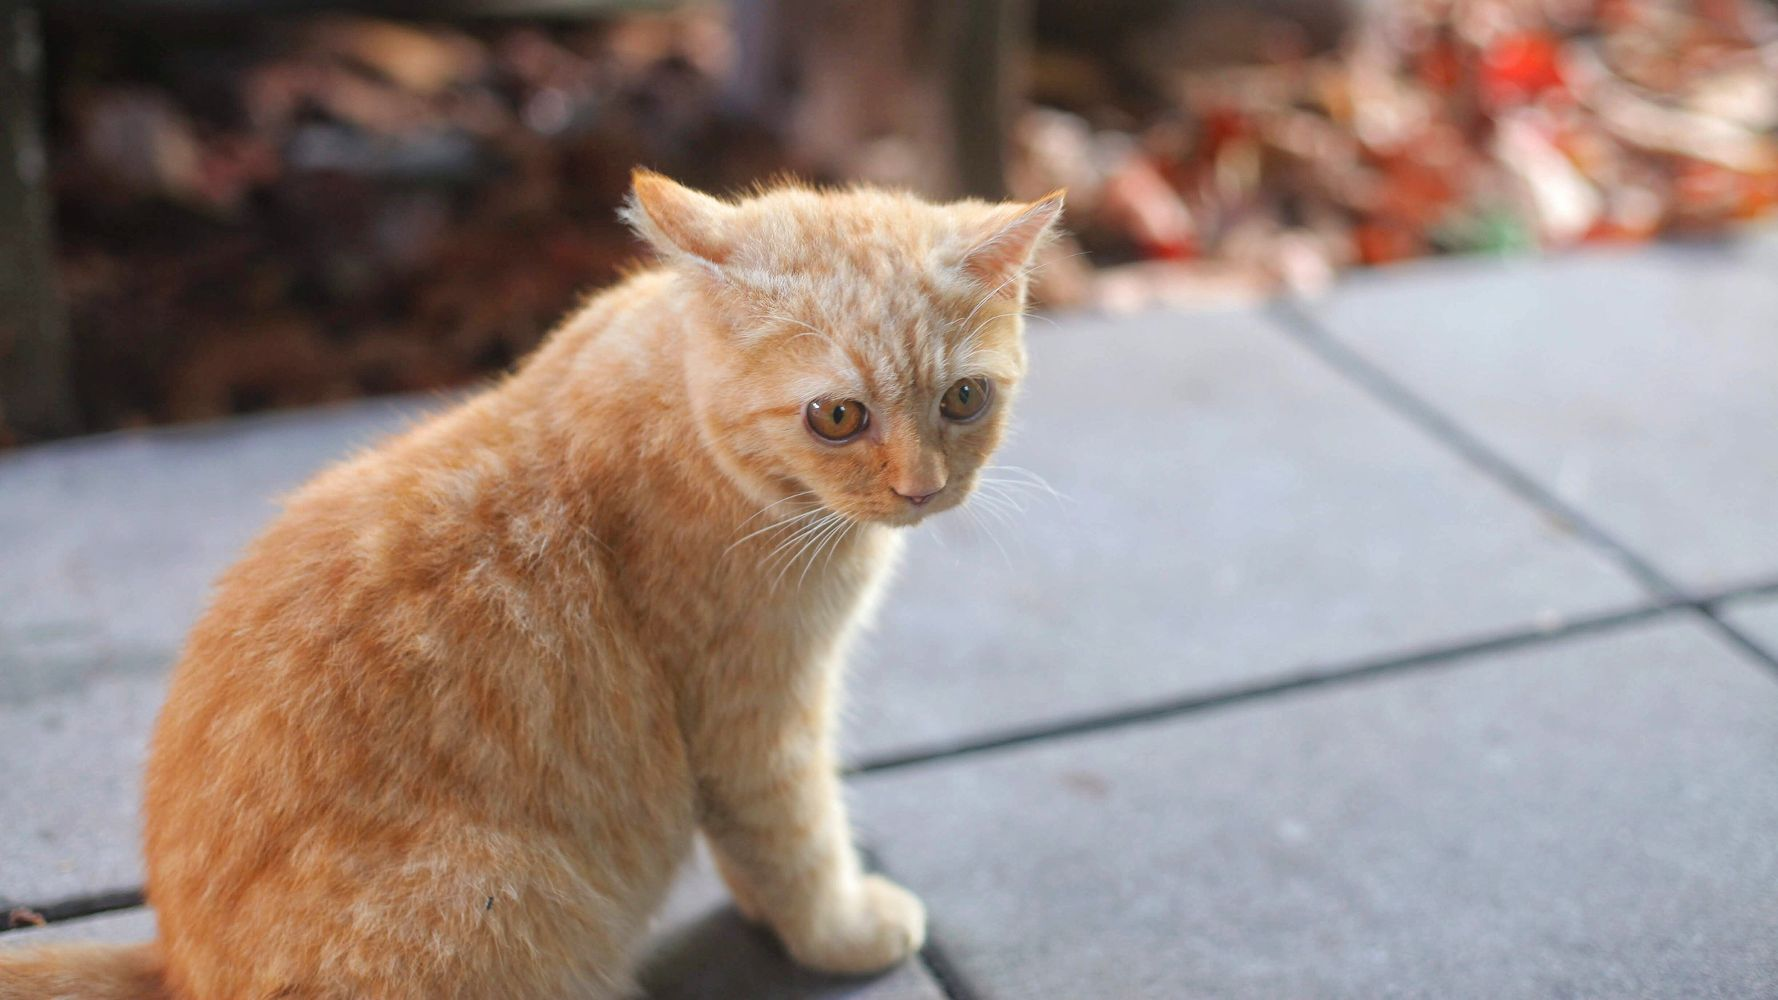 Killing A Cat In A Hit-And-Run Could Become Illegal In New Hampshire